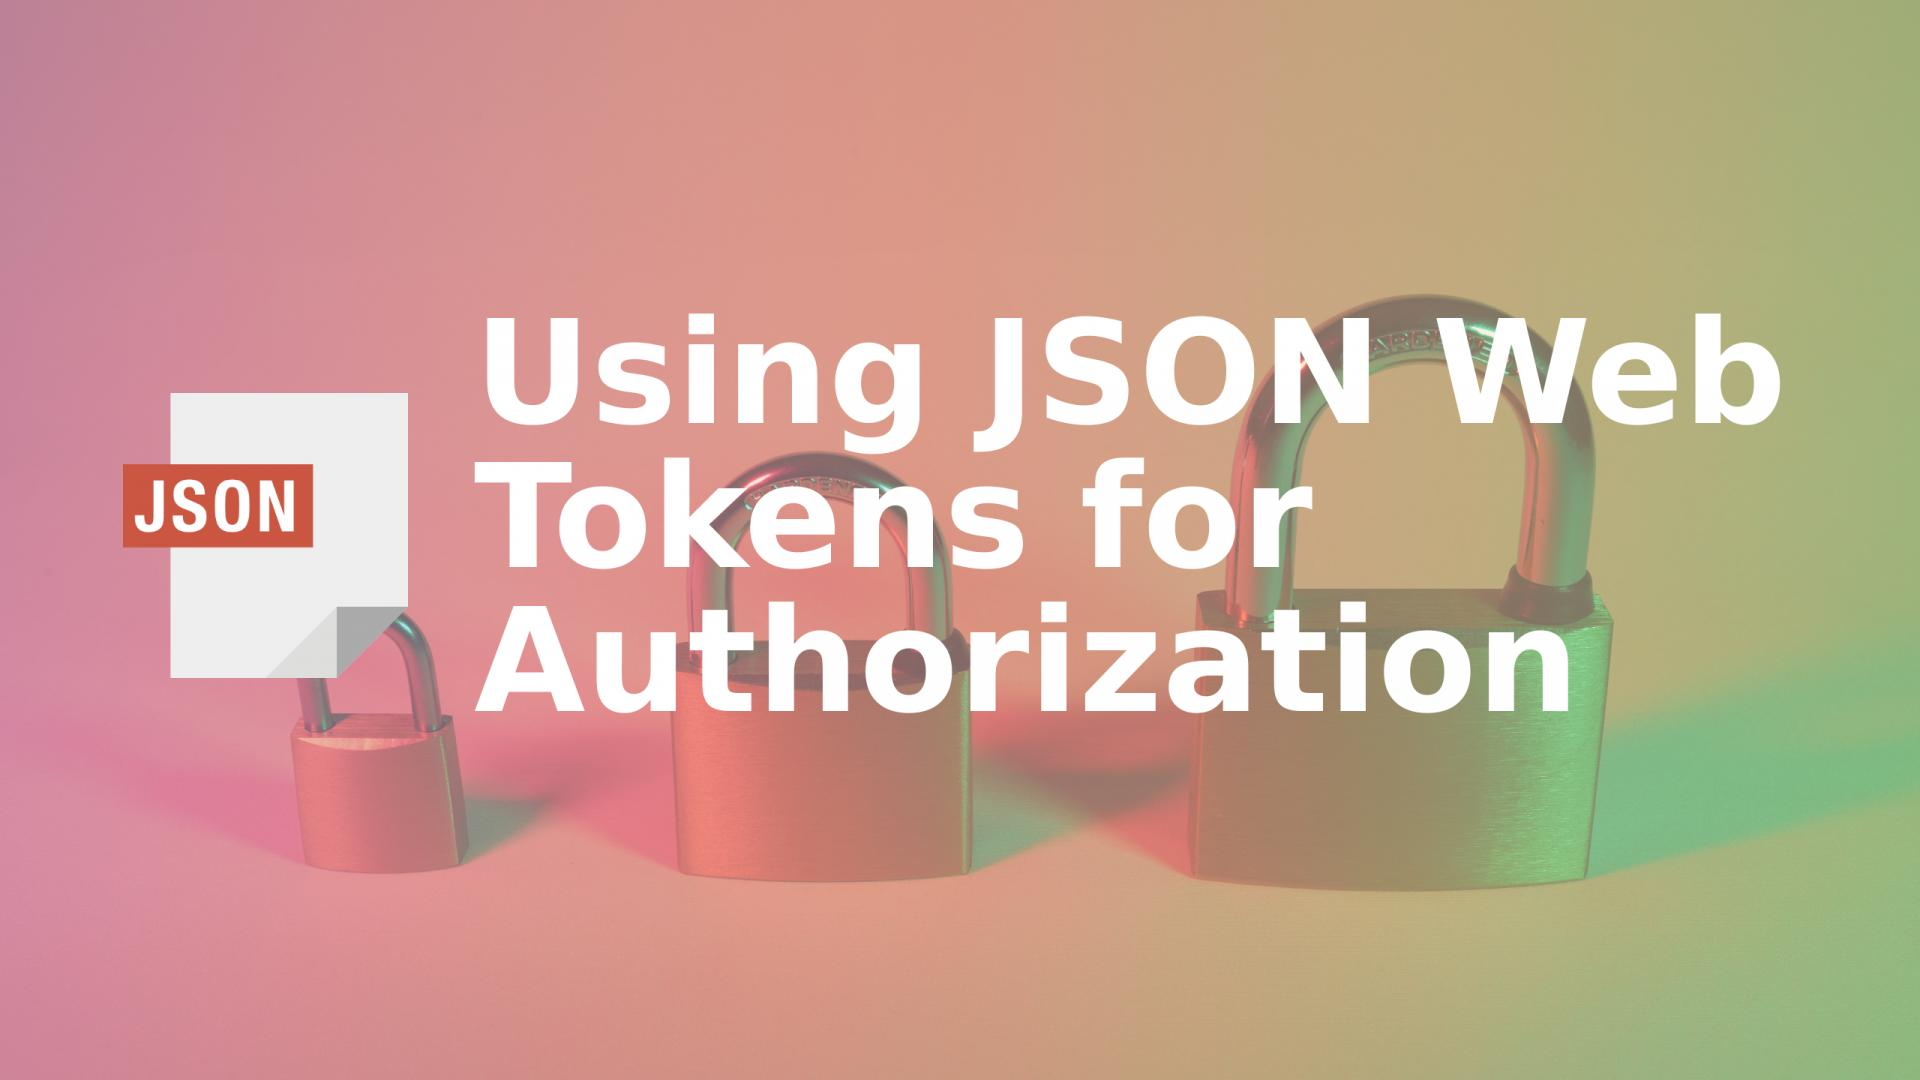 Using JSON Web Tokens for Authorization